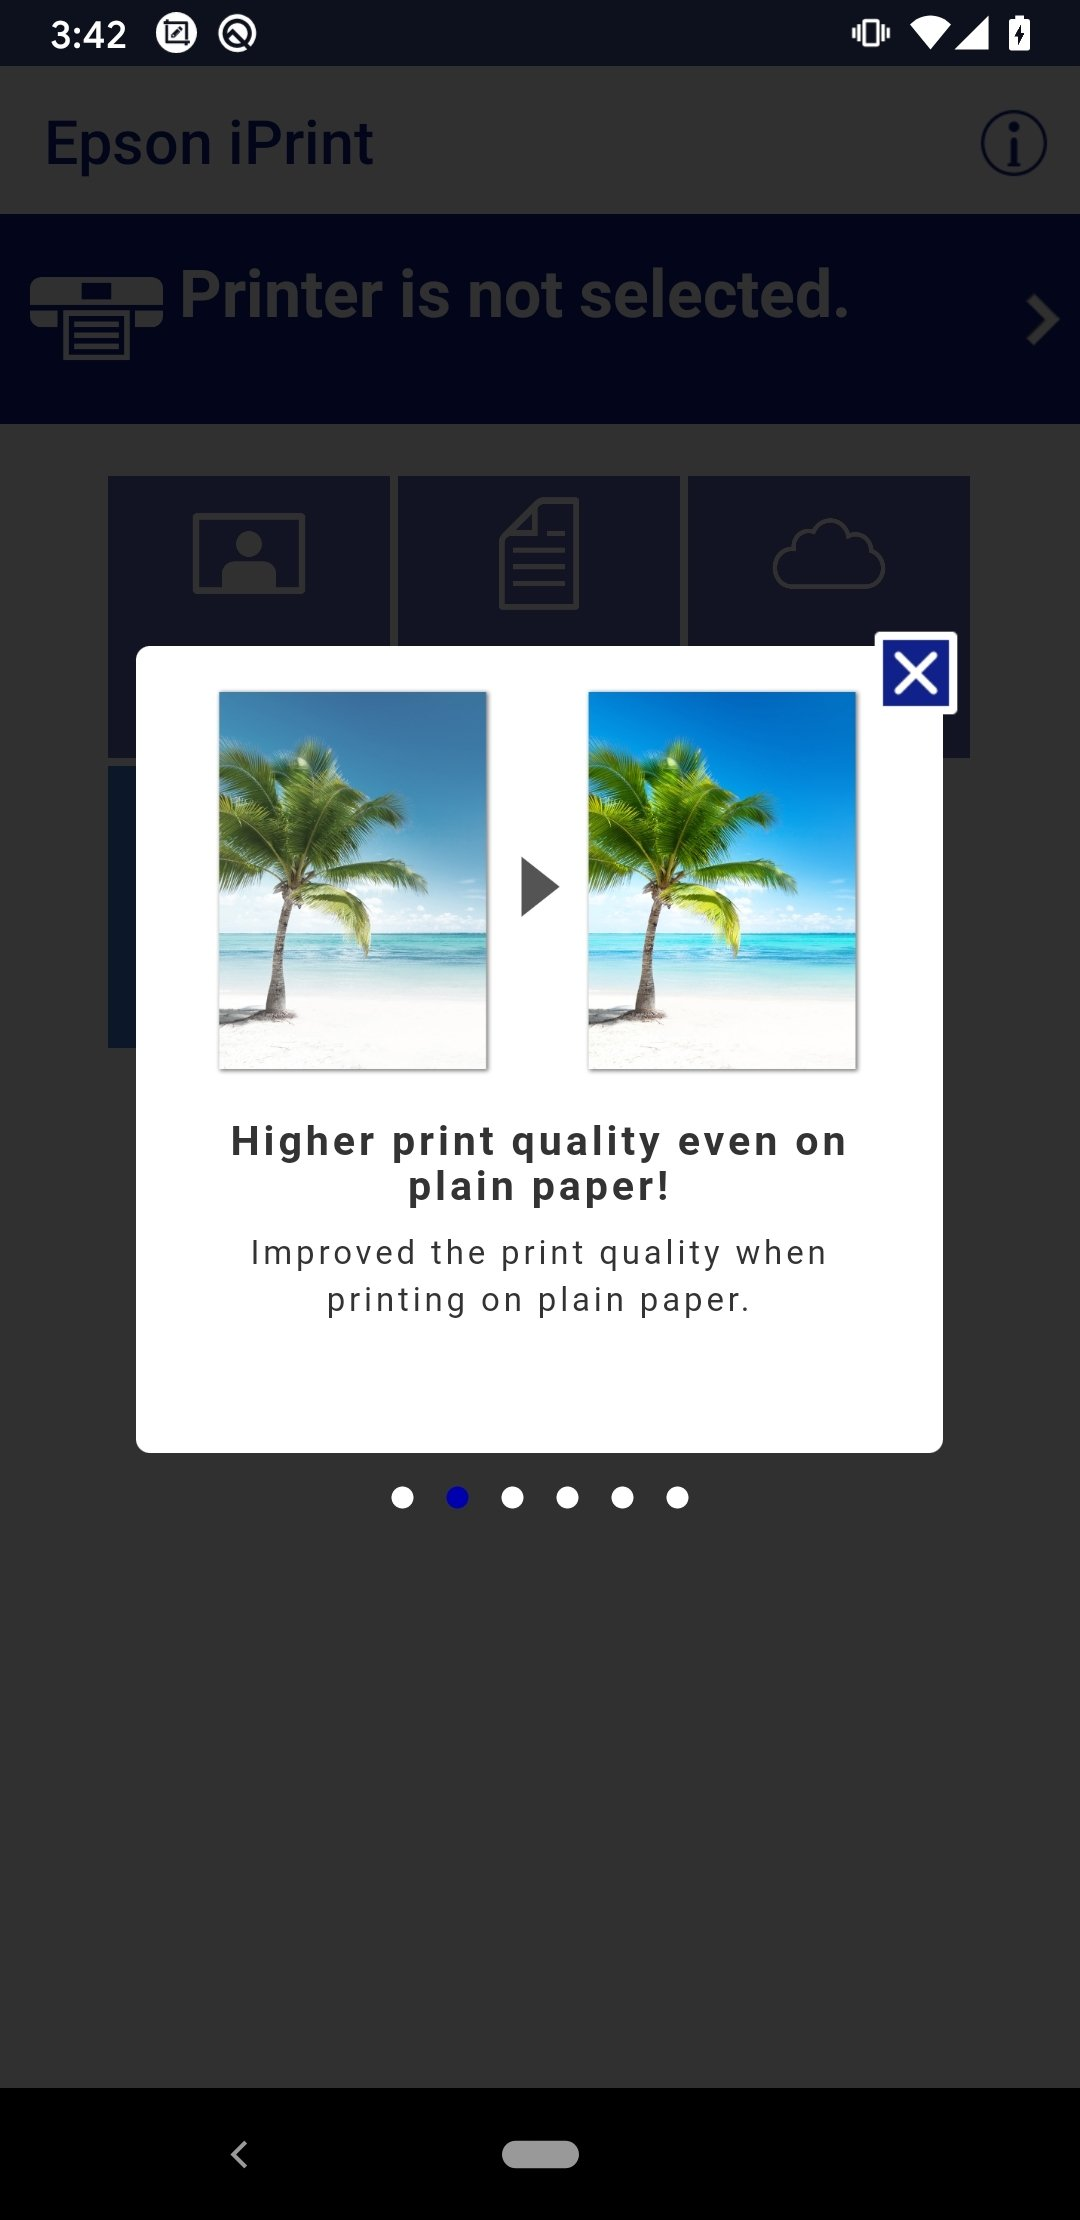 epson iprint android